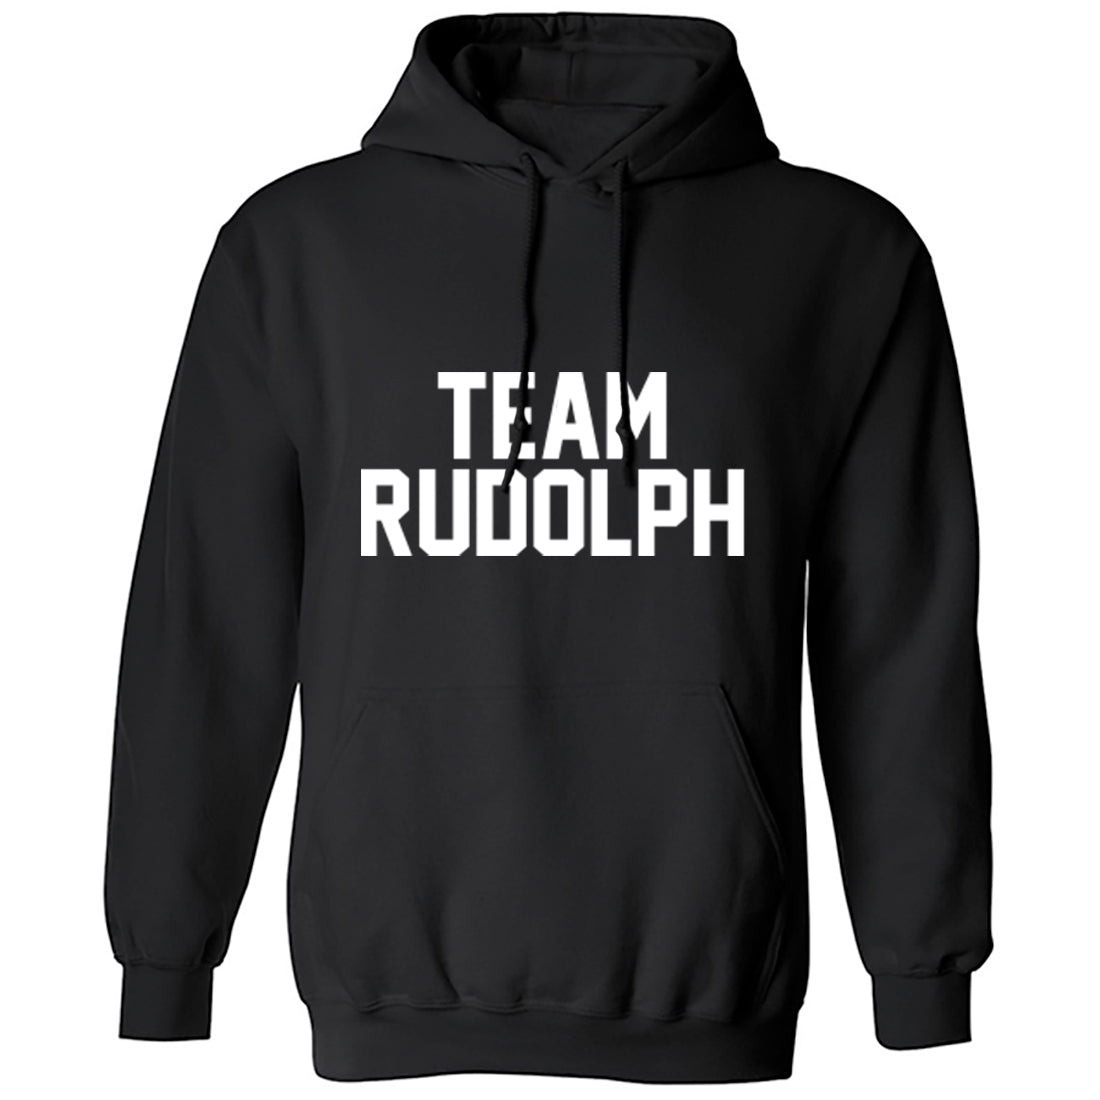 Team Rudolph Unisex Hoodie K1354 - Illustrated Identity Ltd.